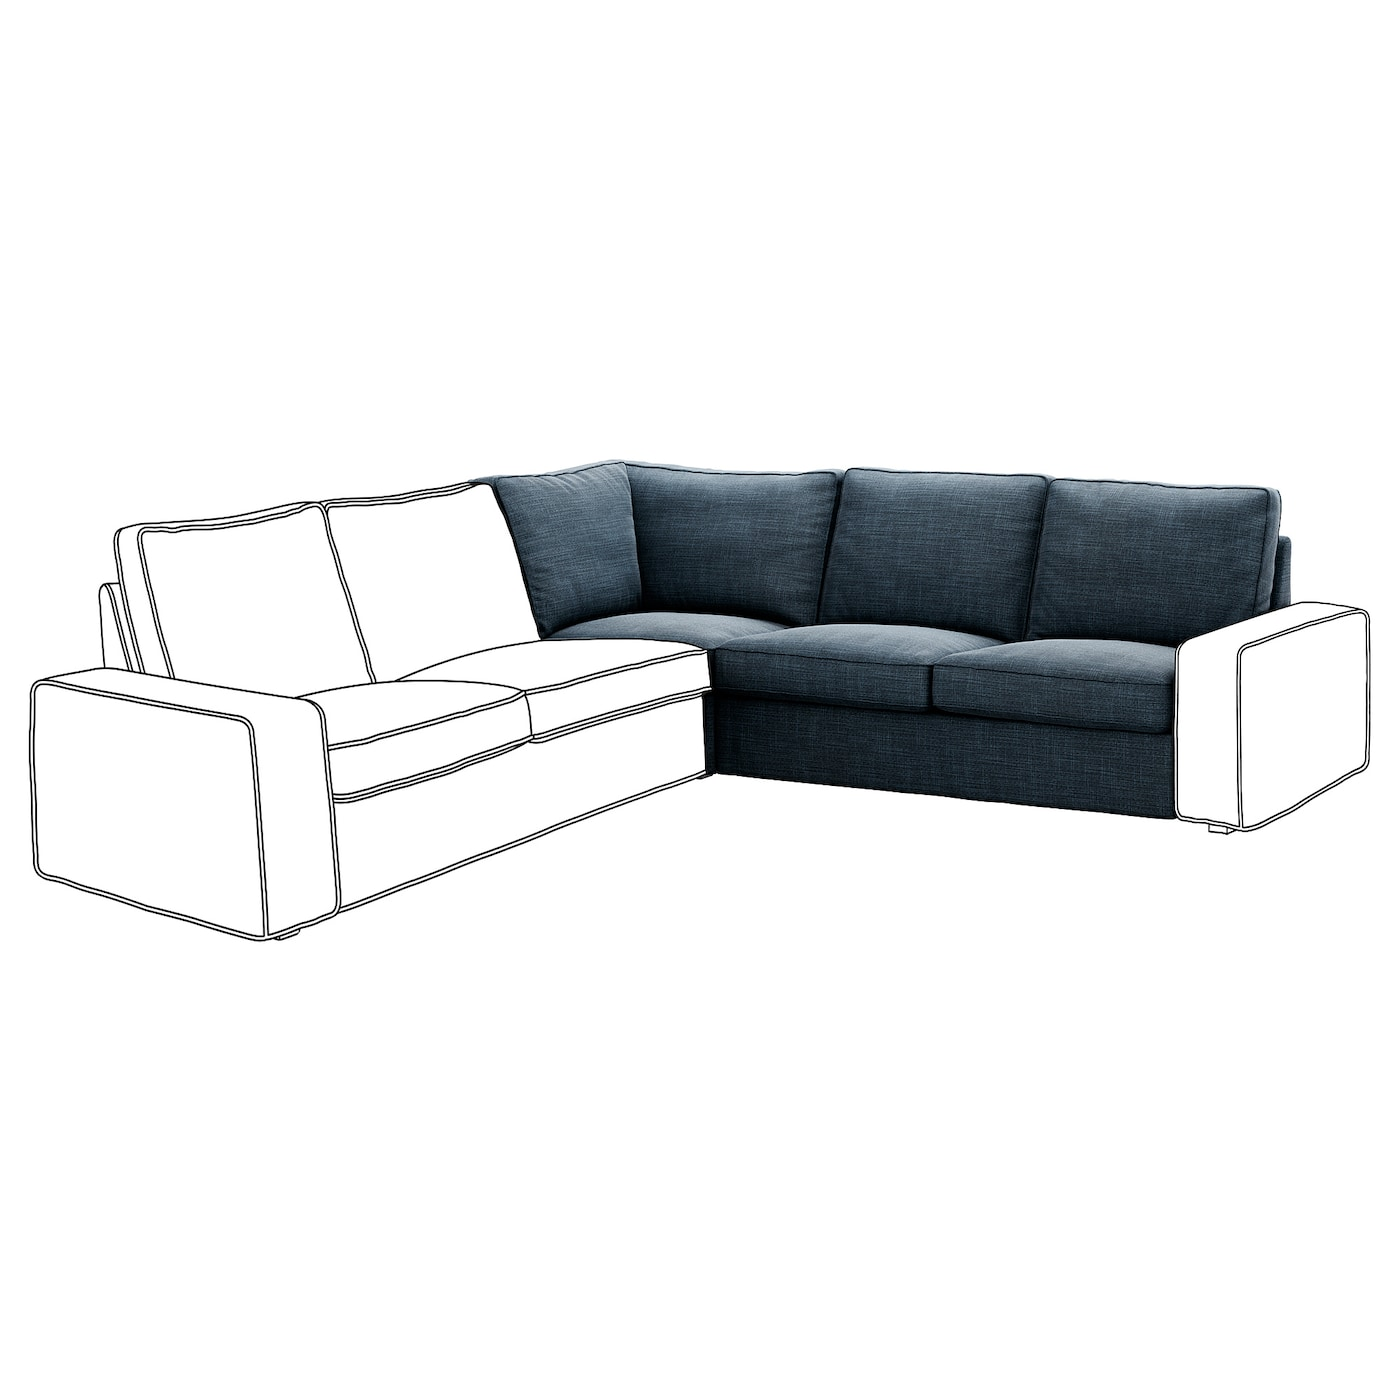 IKEA KIVIK corner section 10 year guarantee. Read about the terms in the guarantee brochure.